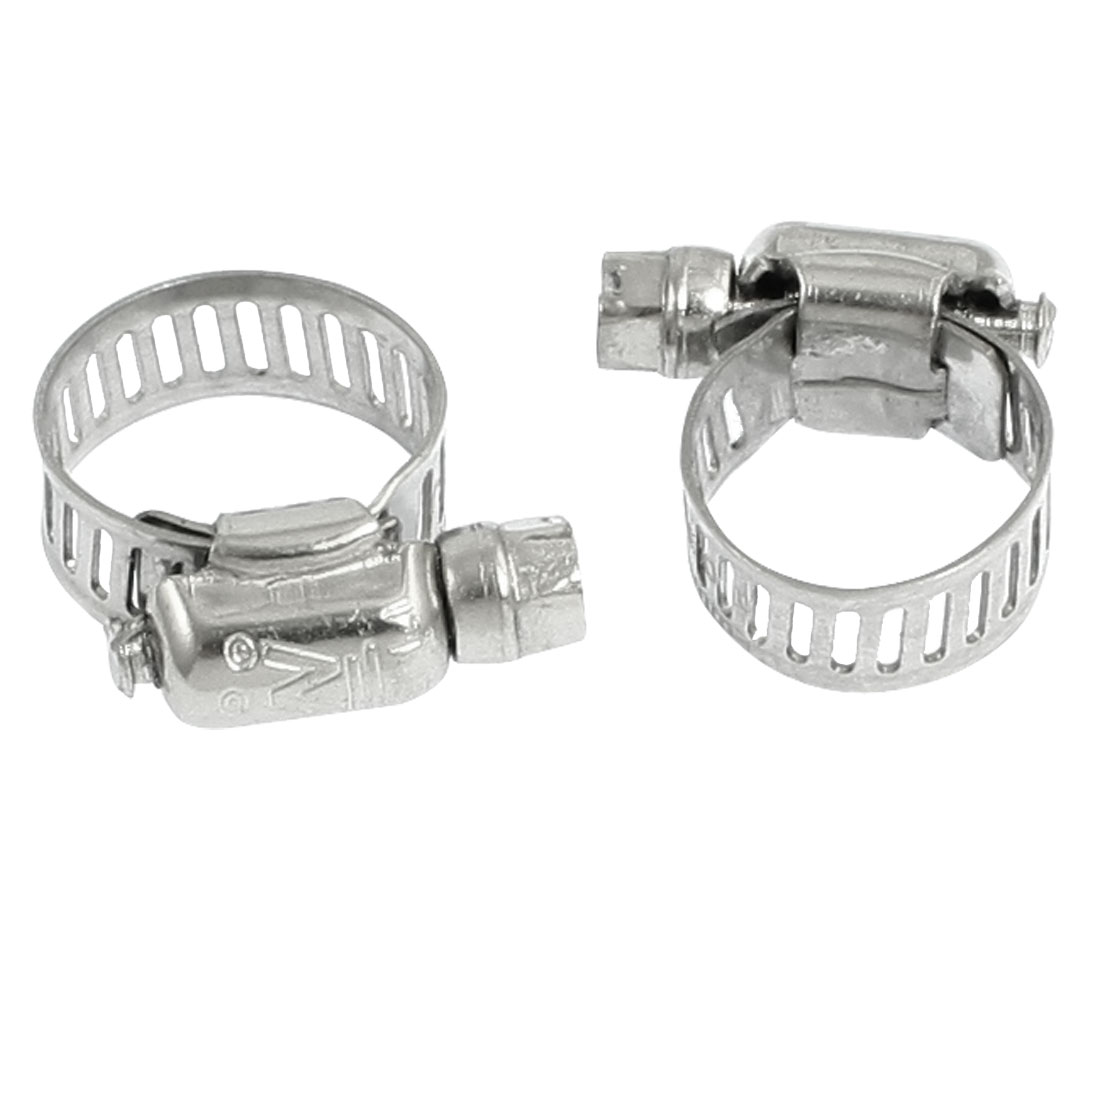 Unique Bargains 2 Pcs Worm Drive Adjustable Pipe Hose Clamp Wrap 10mm-16mm